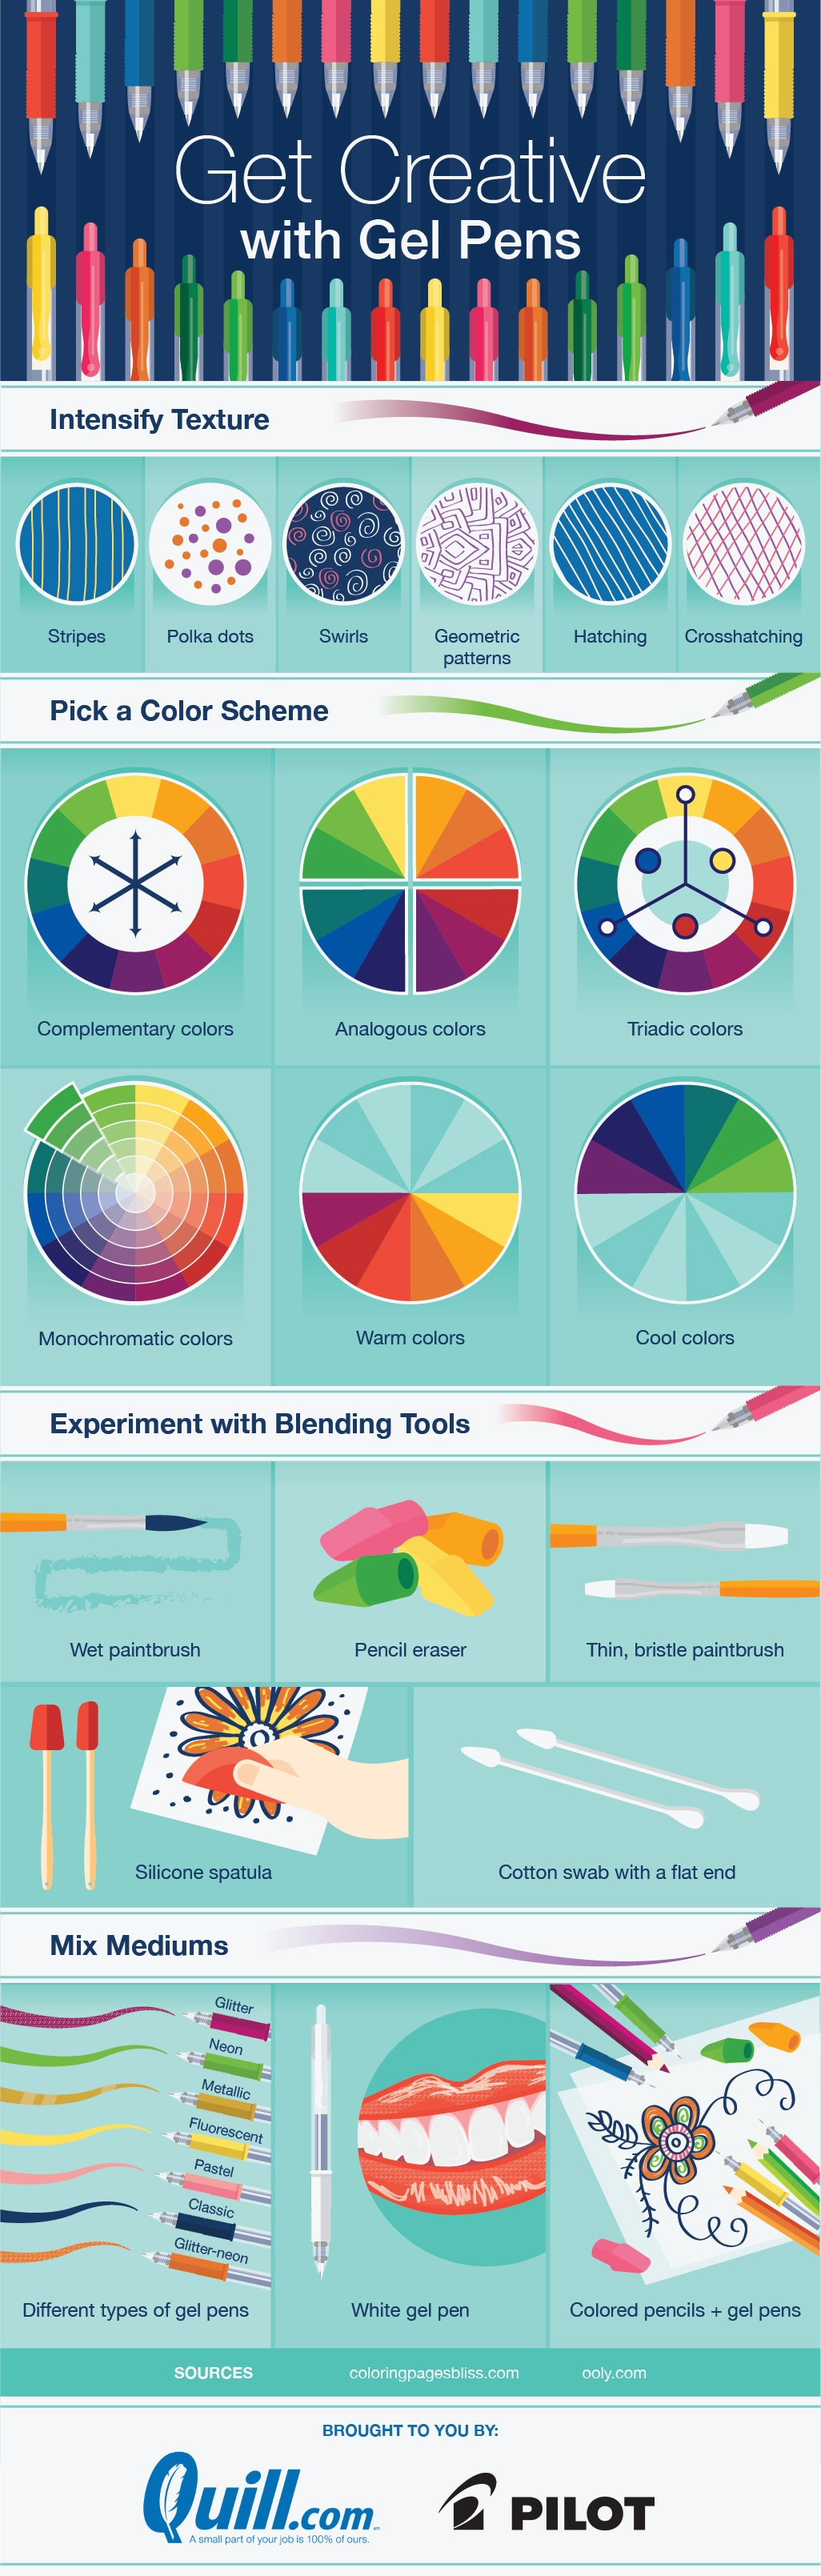 Explore the Artist in You: Having Fun with Gel Pens - Infographic